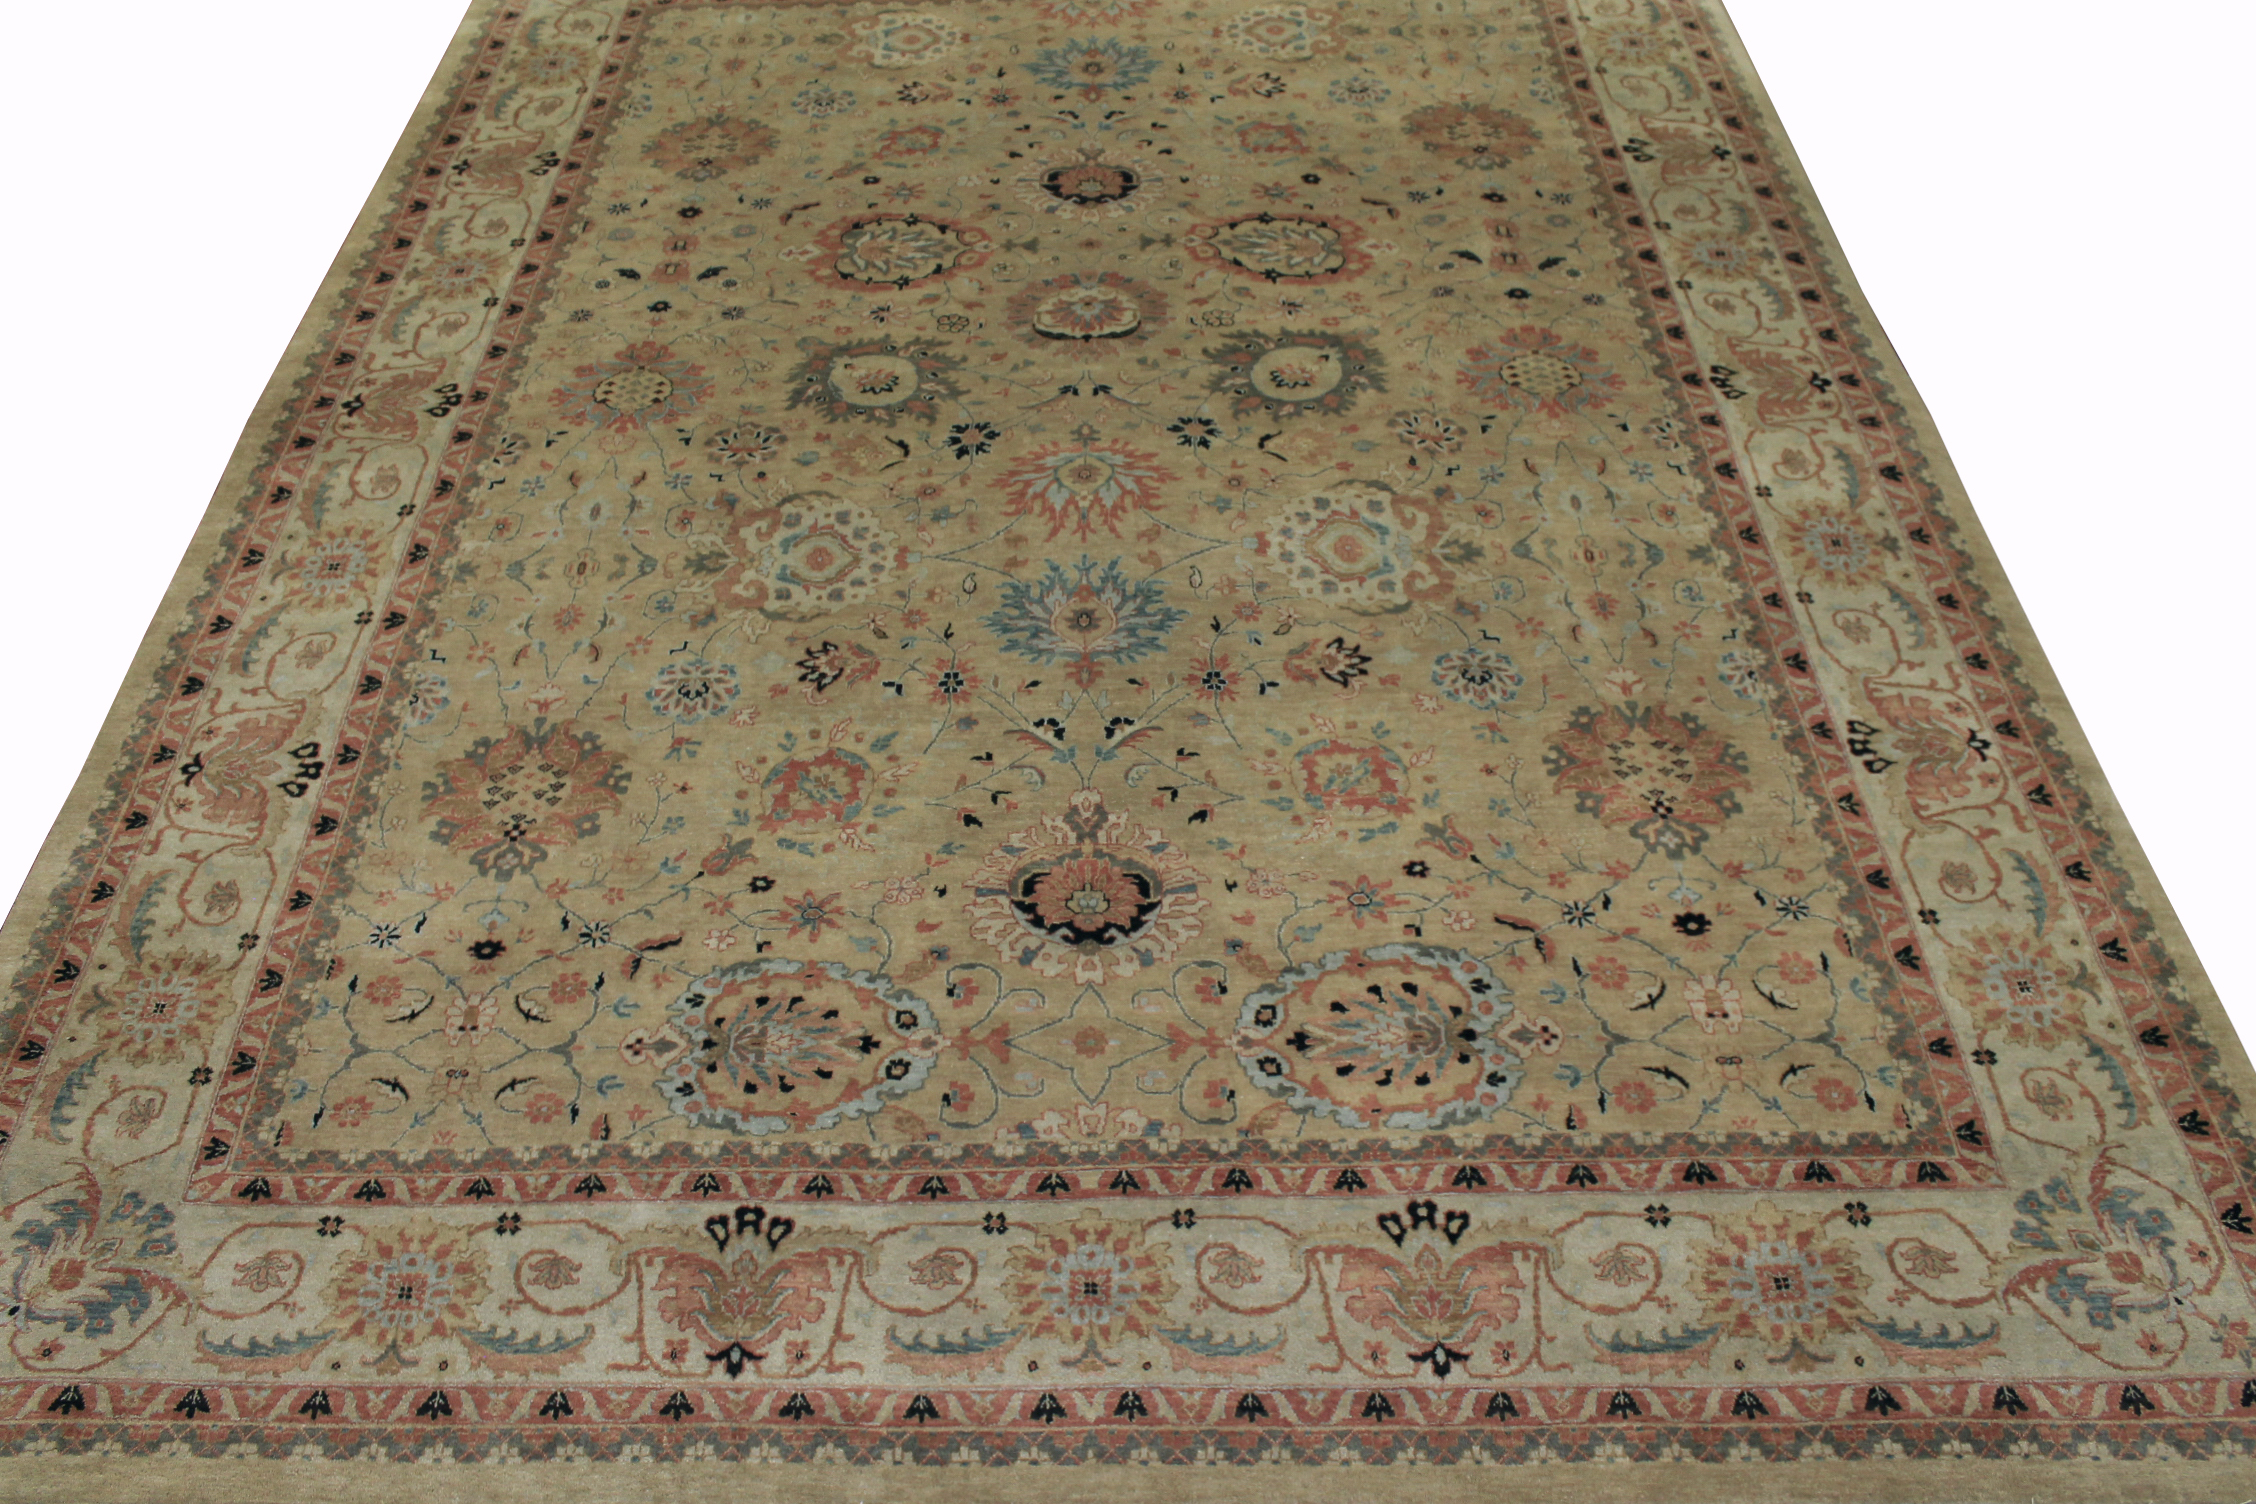 9x12 Traditional Hand Knotted Wool Area Rug - MR6598